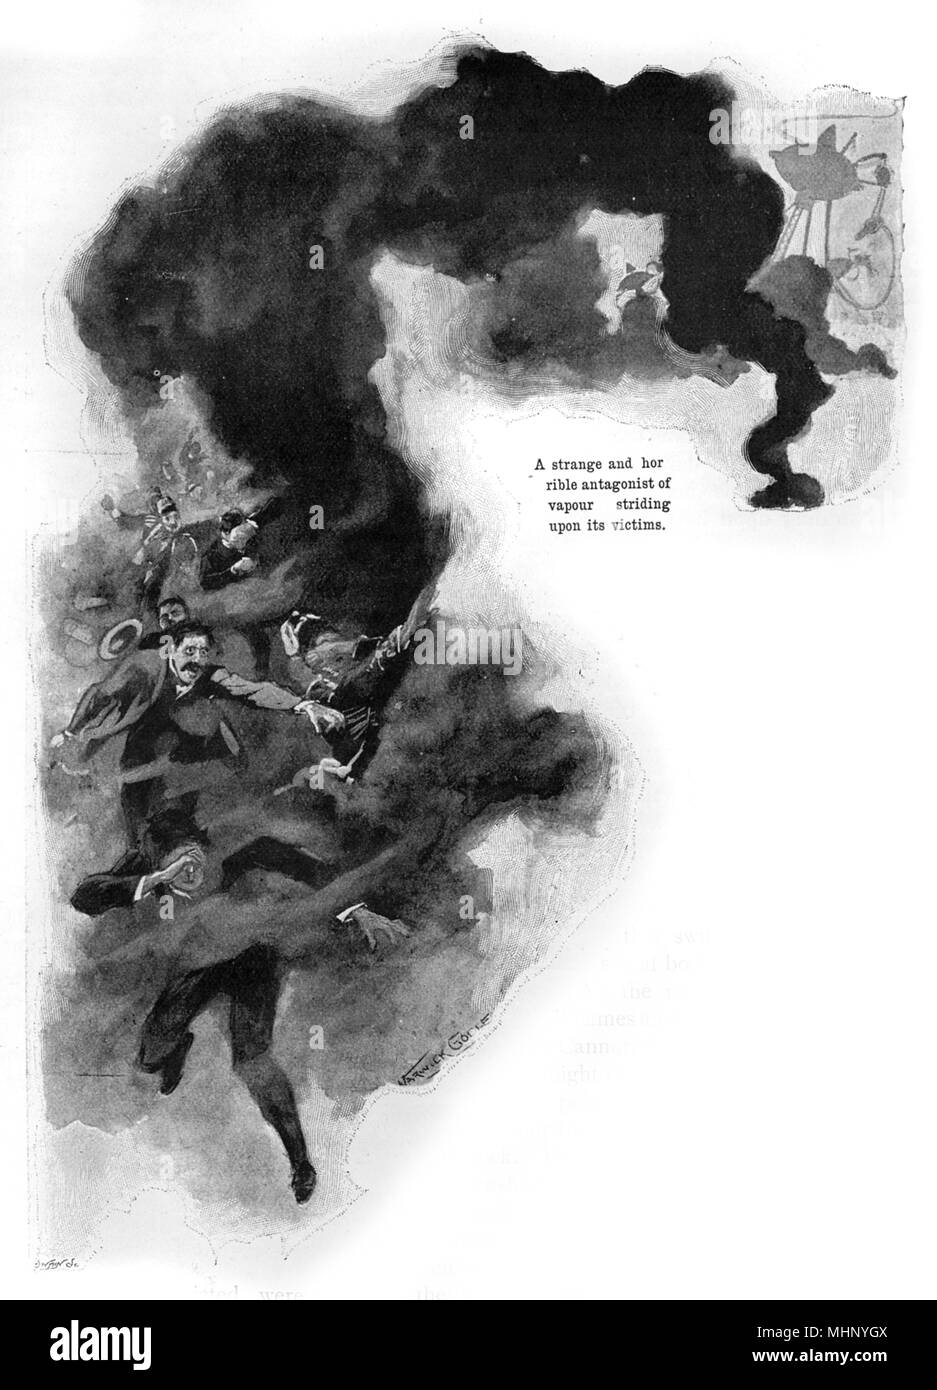 The Martian 'black vapour' striking down its victims... The War of the Worlds is a science fiction novel by English author H. G. Wells (1866-1946). This plate comes from the first serialised version, published in 1897 by Pearson's Magazine in the UK.     Date: 1897 - Stock Image